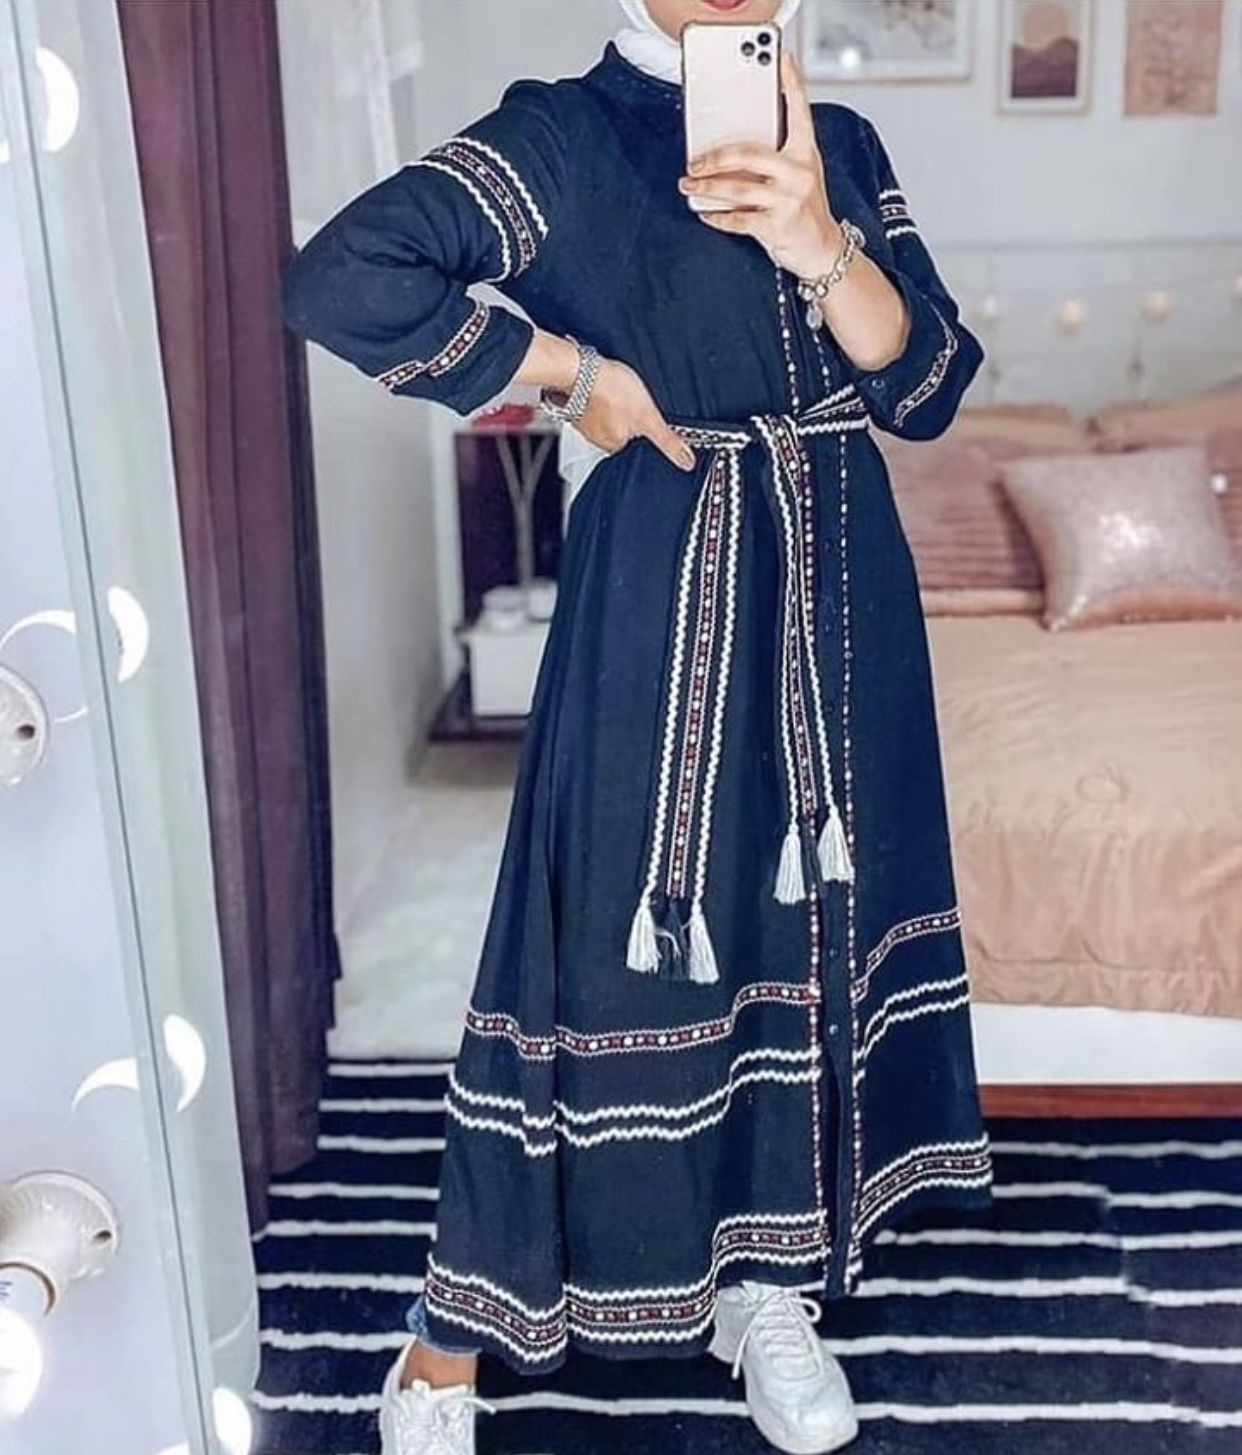 Pin By Lenover Flower On D R E S S E S In 2020 Muslim Fashion Outfits Muslimah Fashion Outfits Hijab Fashion Summer